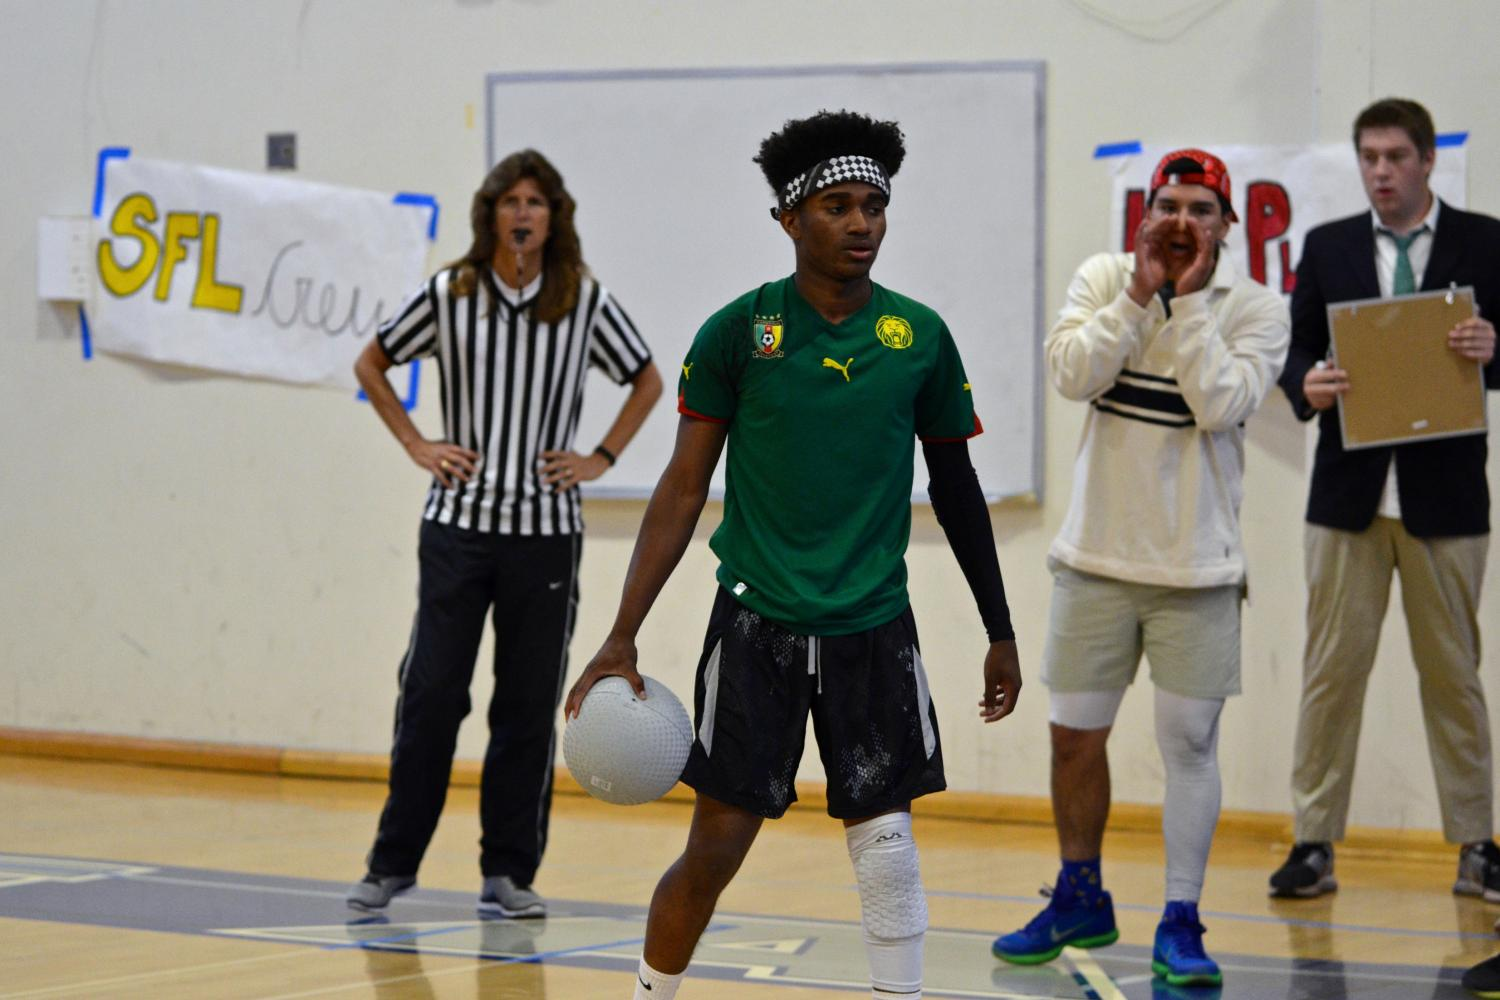 Goodwill Hunters senior Ahmad Washington , with teammate senior Max Higareda cheering him on in the background, gears up to throw against the Globo Gym Purple Cobras in the championship match.